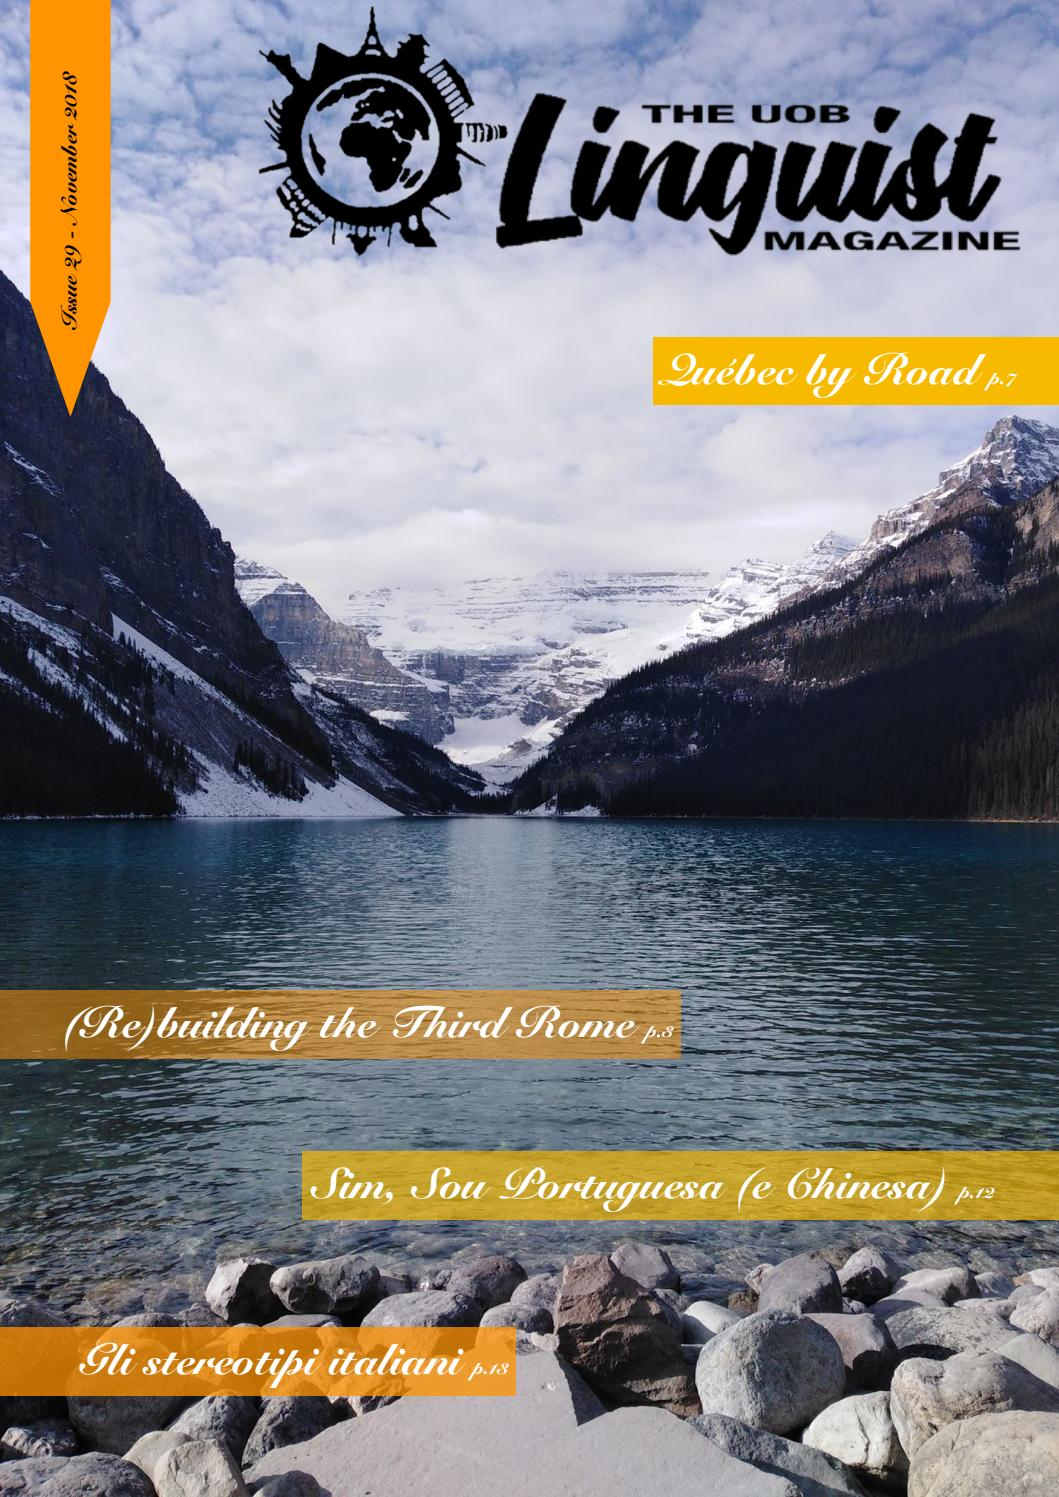 Issue 29 By The Uob Linguist Magazine Issuu